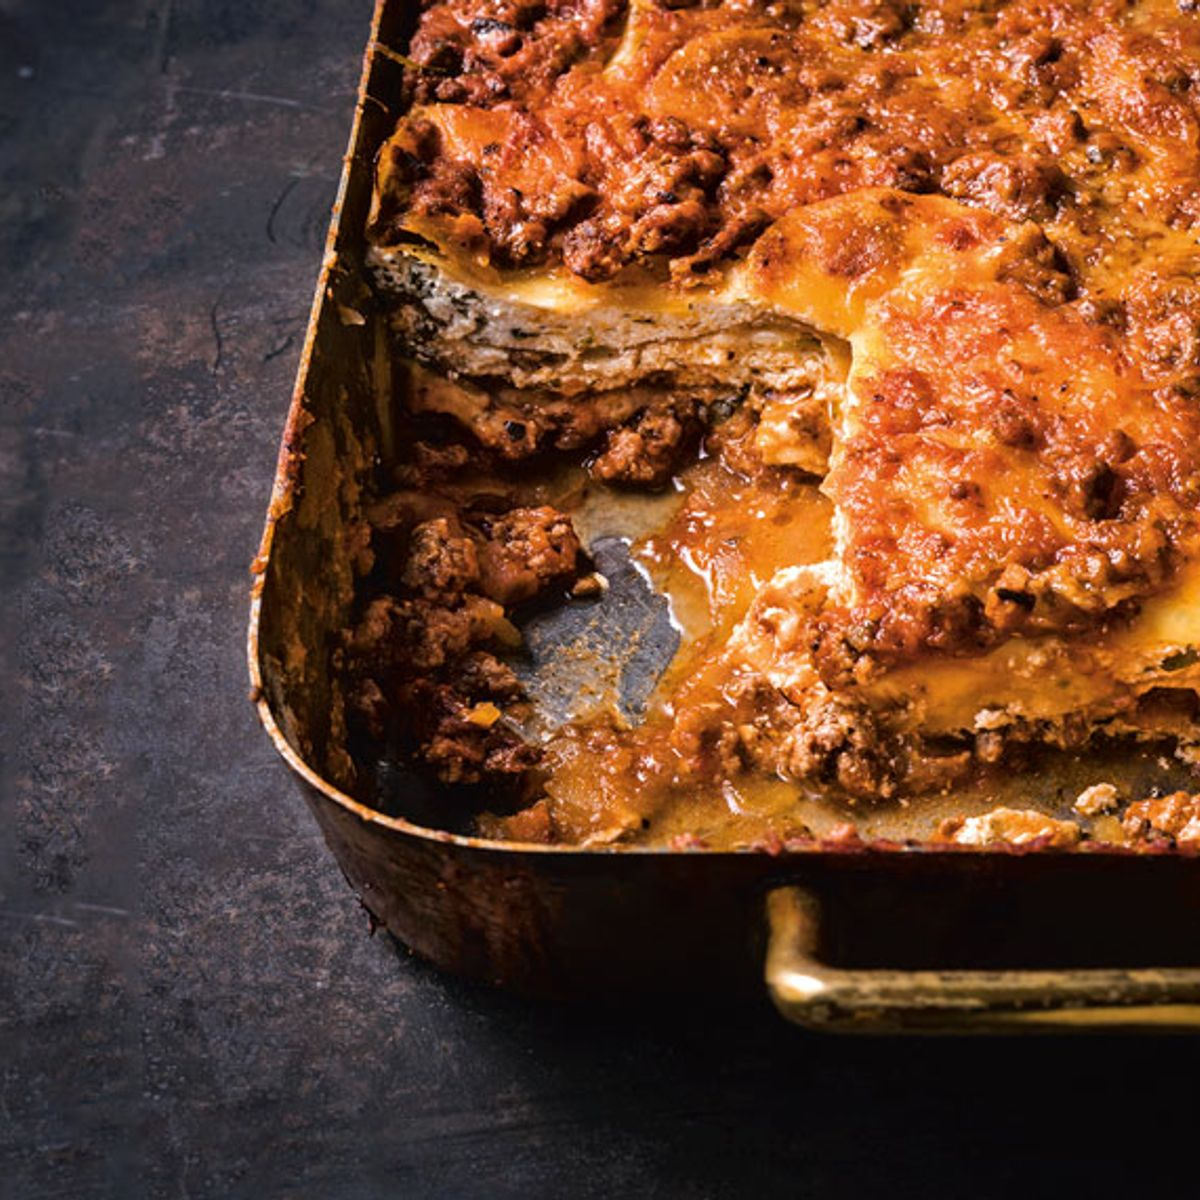 This is the best lasagna recipe ever (that doesn't actually have noodles)